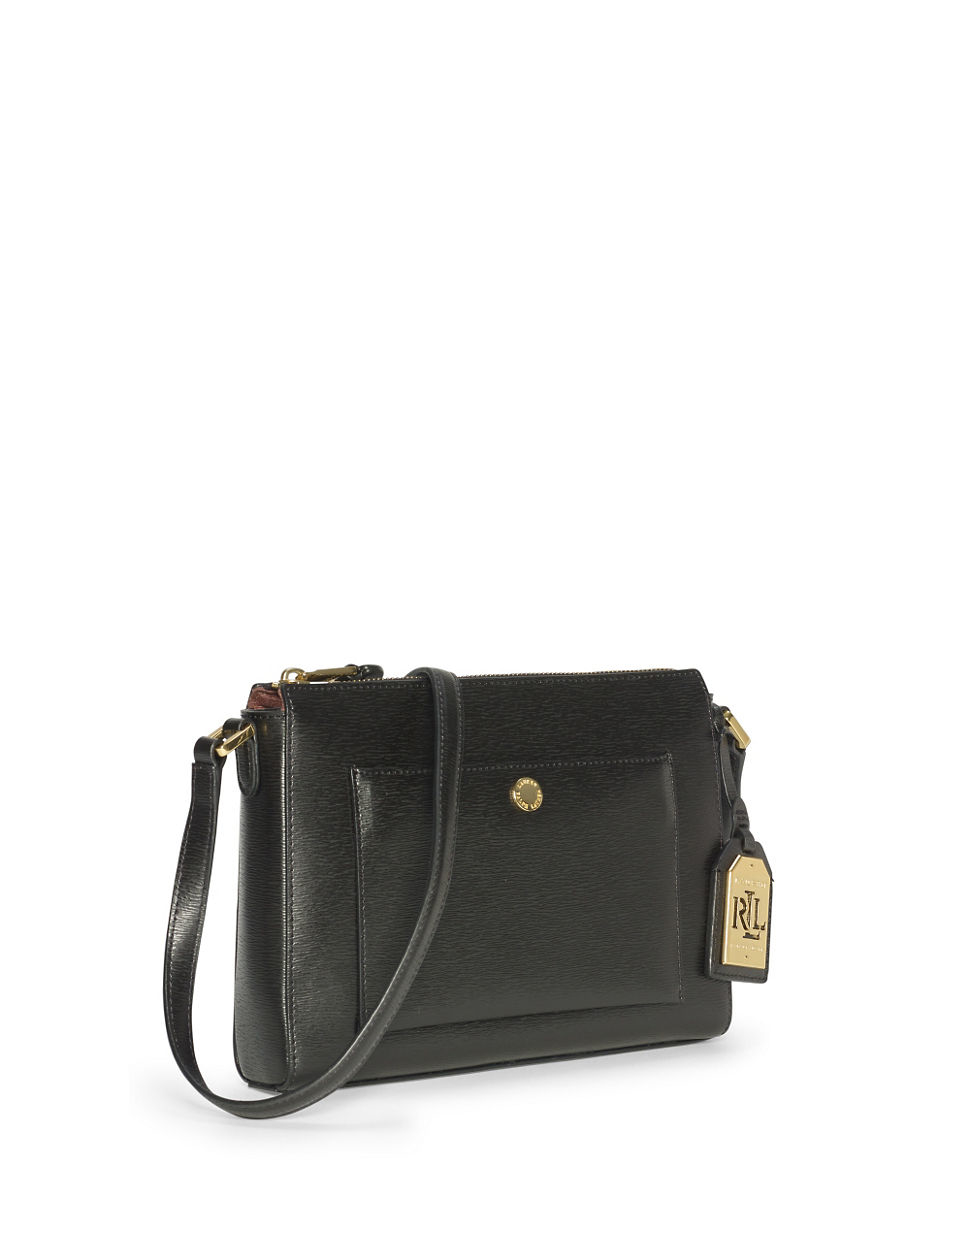 88f12b49c11 ... reduced lyst lauren by ralph lauren newbury leather crossbody bag in  black 6164c 2d4d8